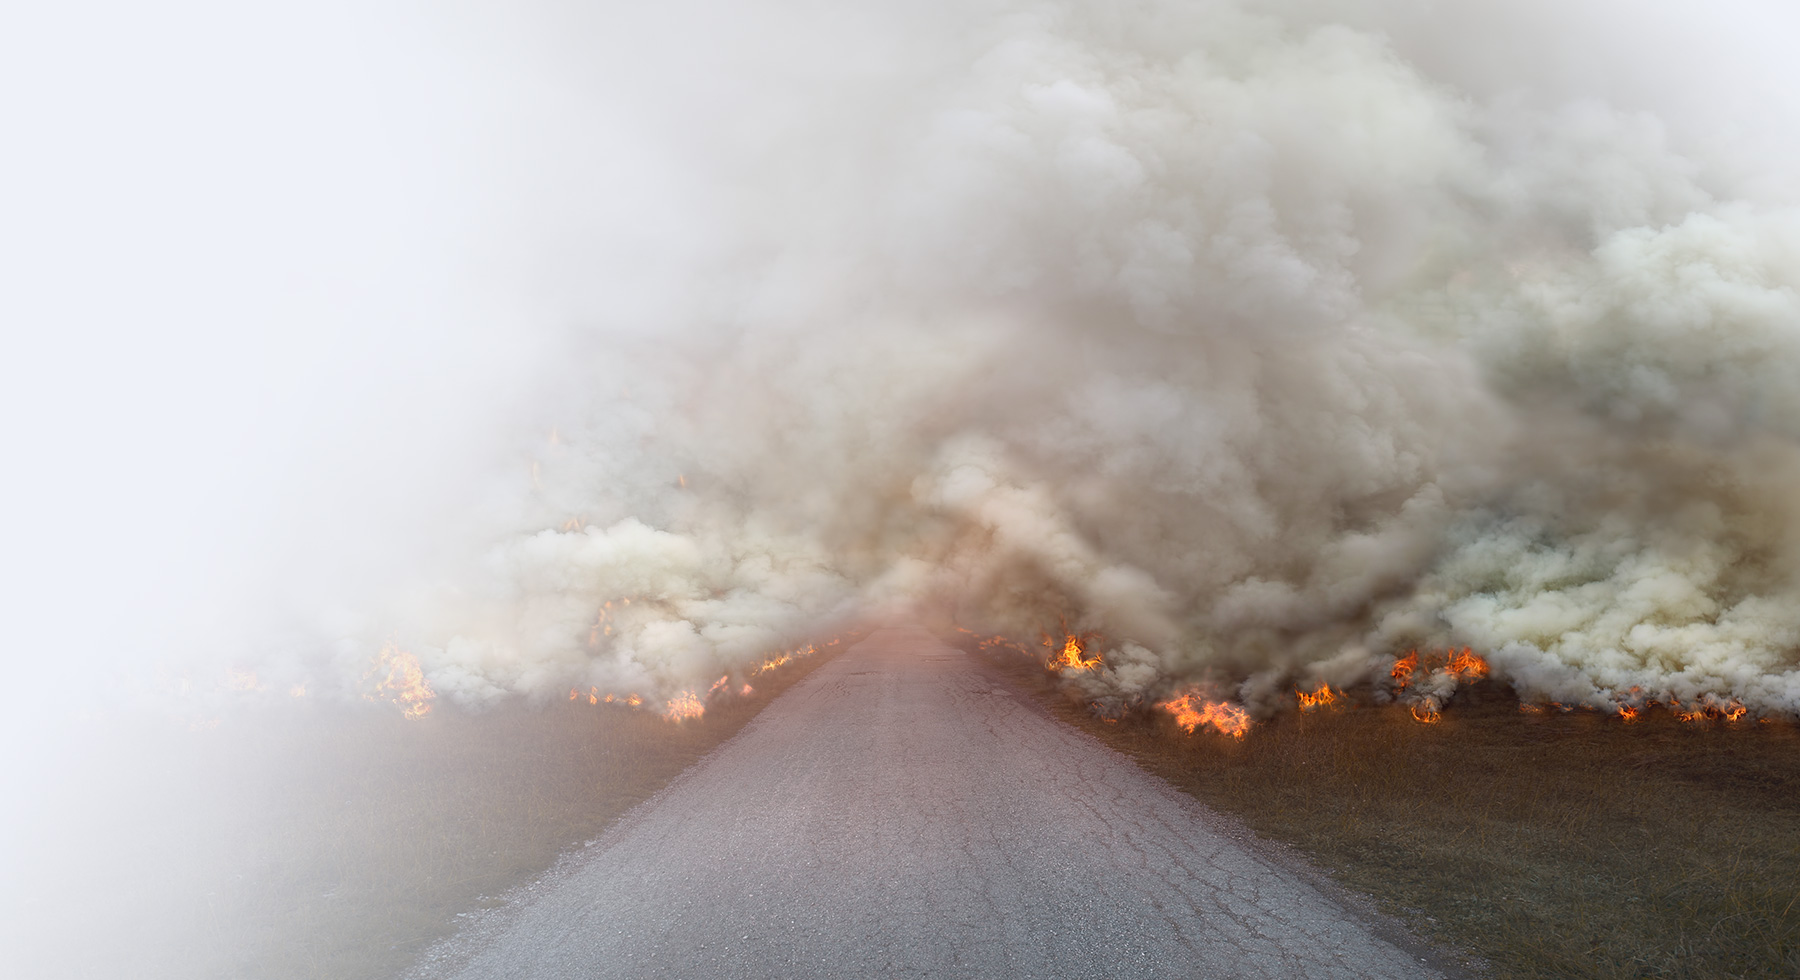 Fire burns with large smoke clouds on the road.